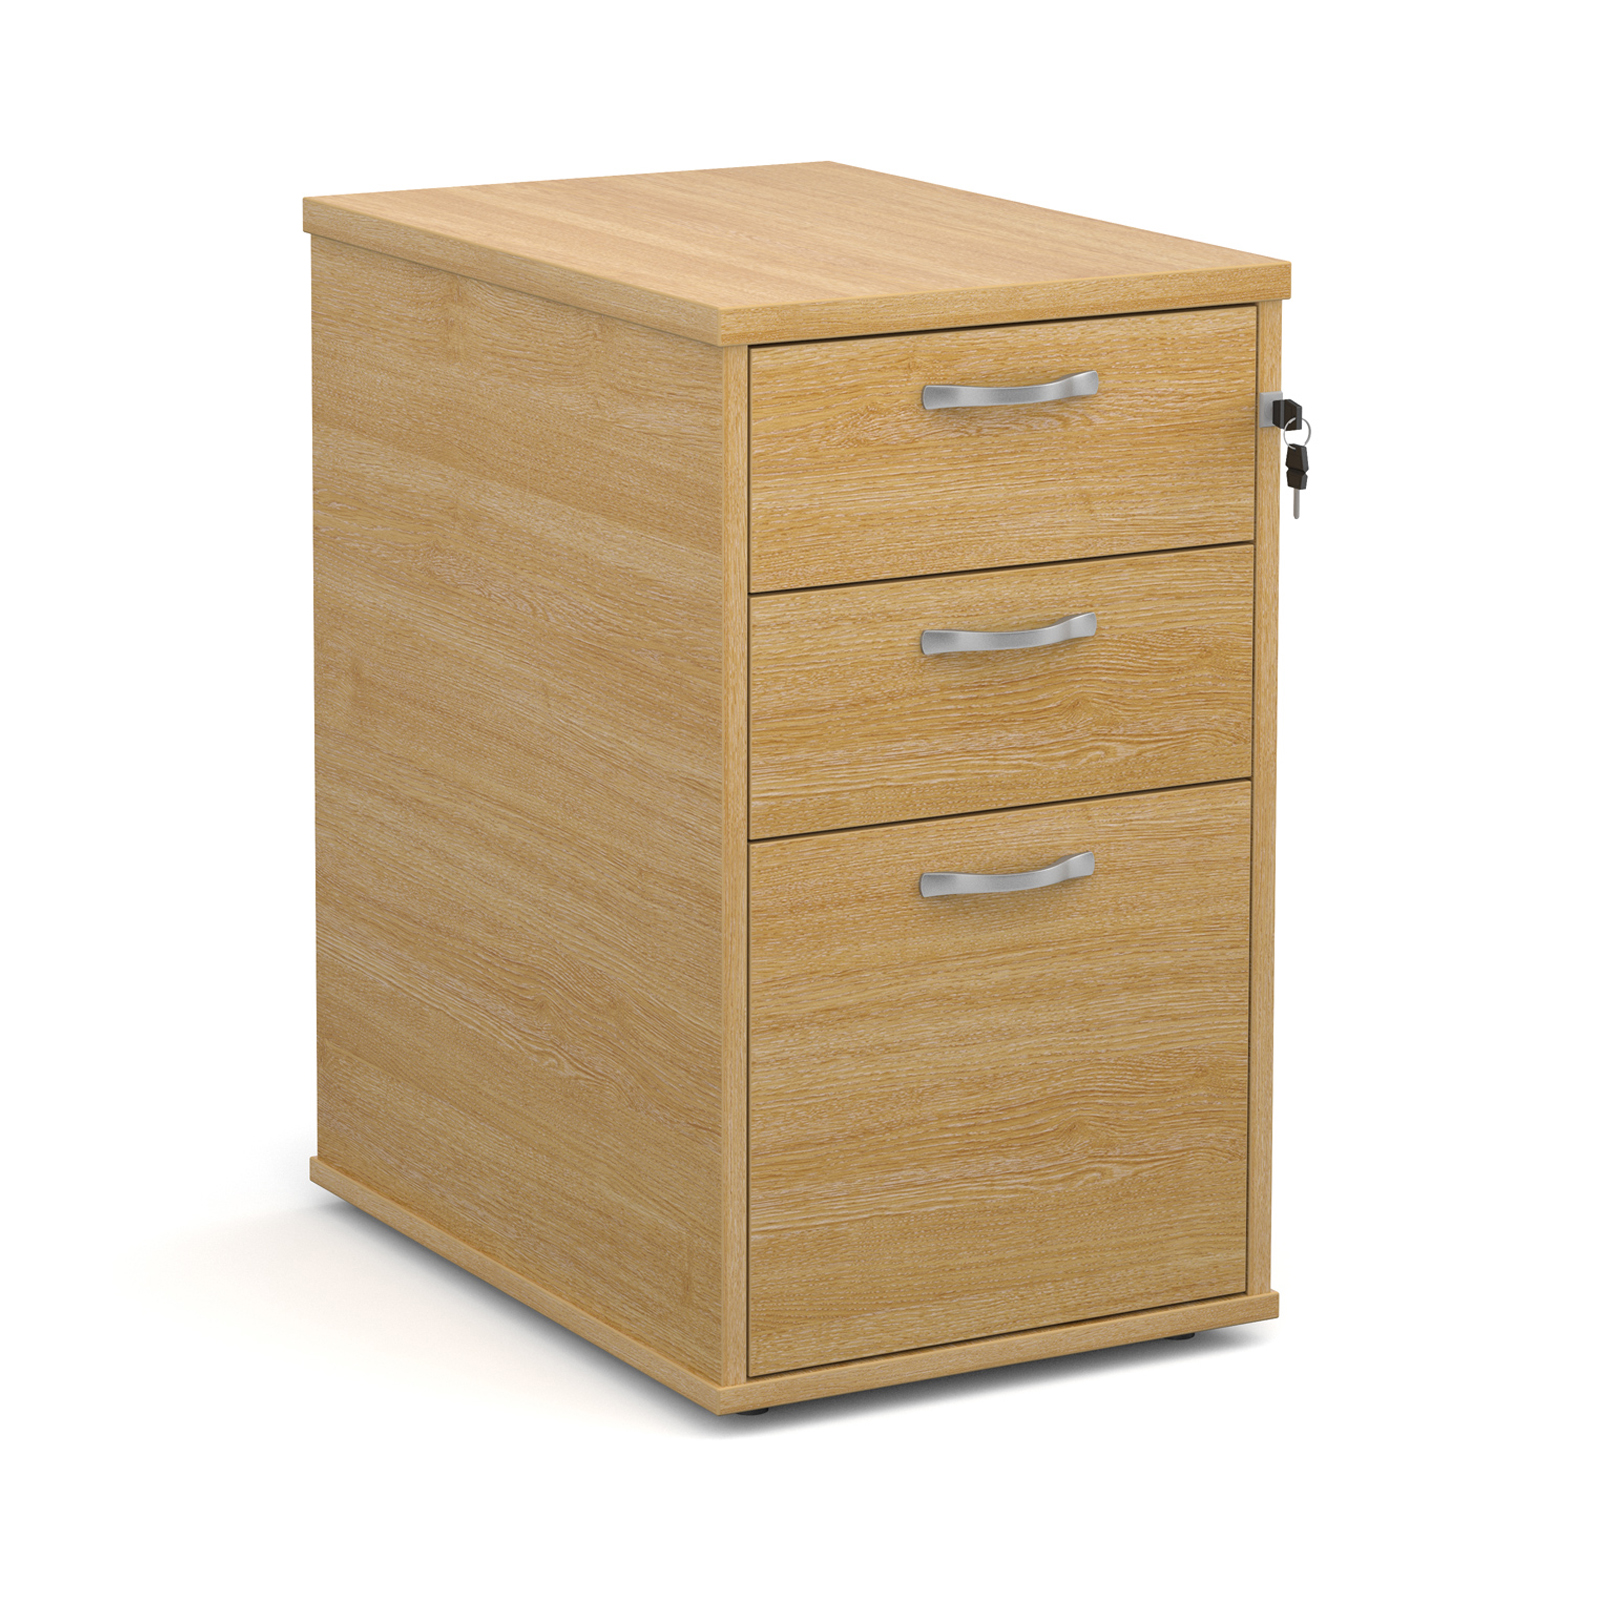 Desk high 3 drawer pedestal with silver handles 600mm deep - oak